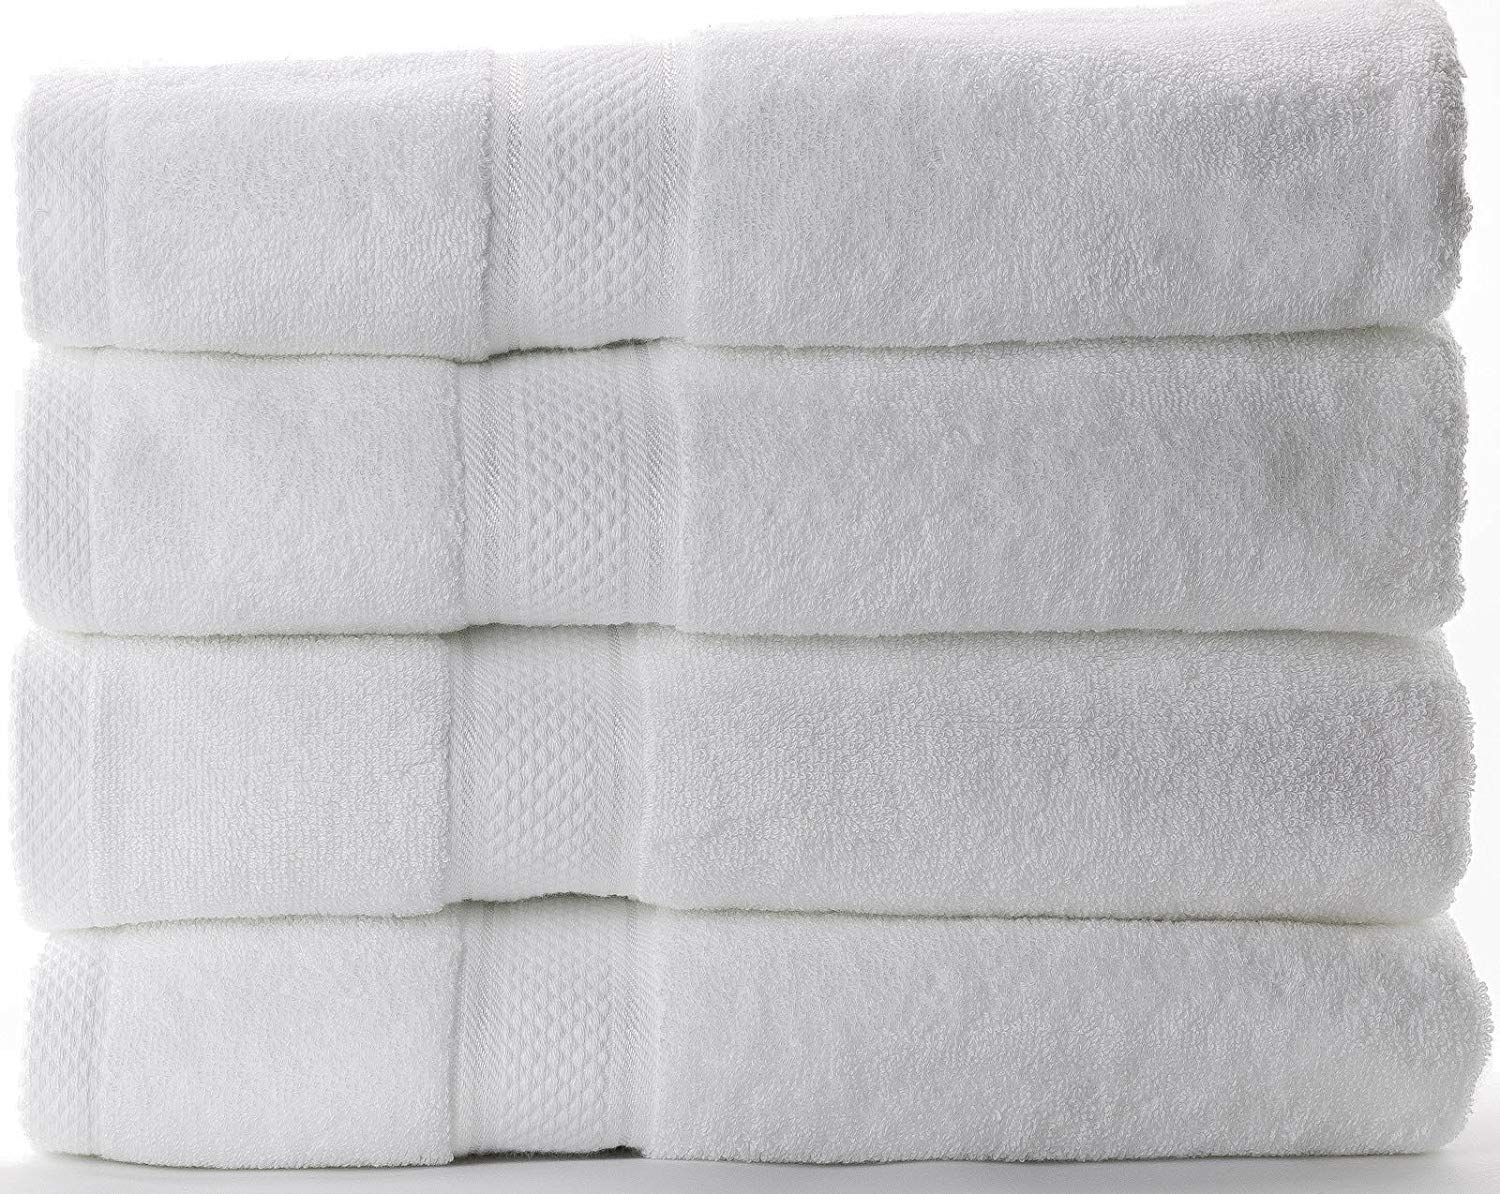 Bath Towel for Hotel and Spa 100% Cotton (White, Set of 4)